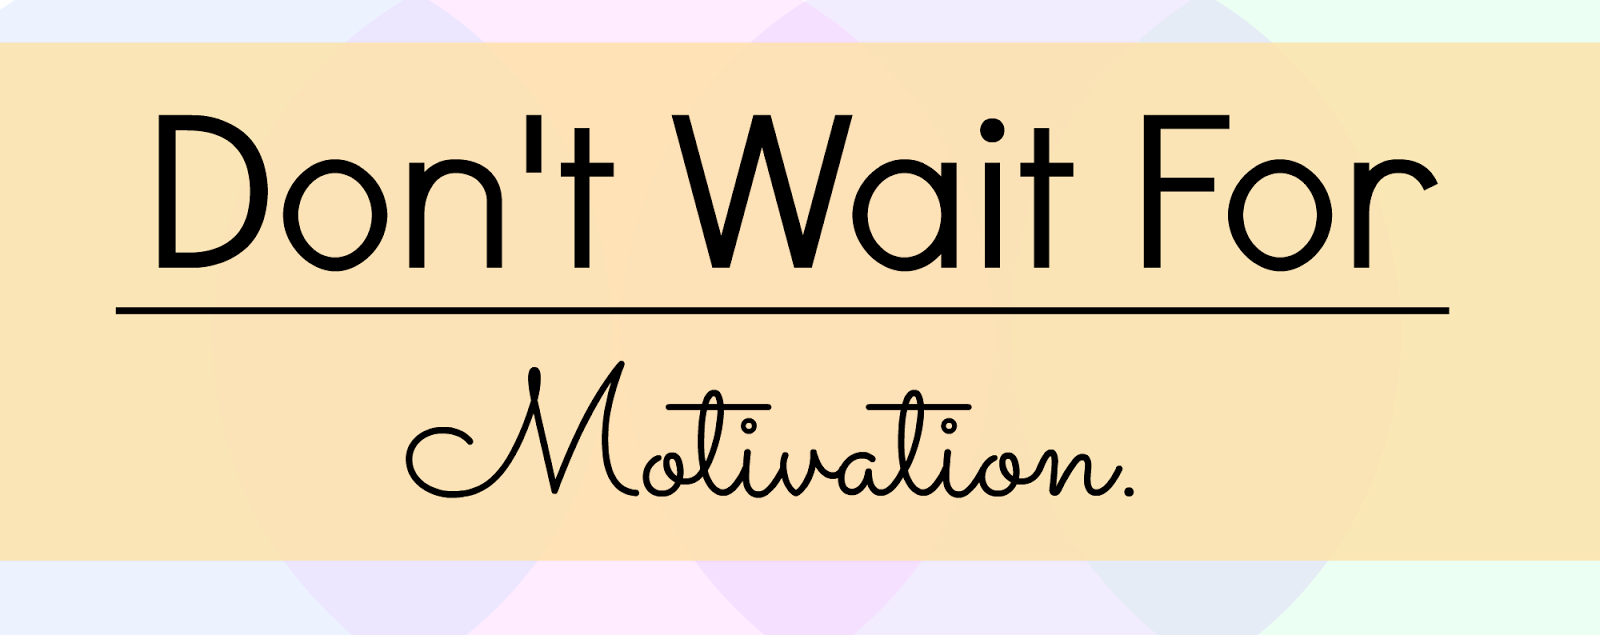 letmecrossover_blog_michele_mattos_motivation_inspiration_tips_productive_productivity_cute_get_things_done